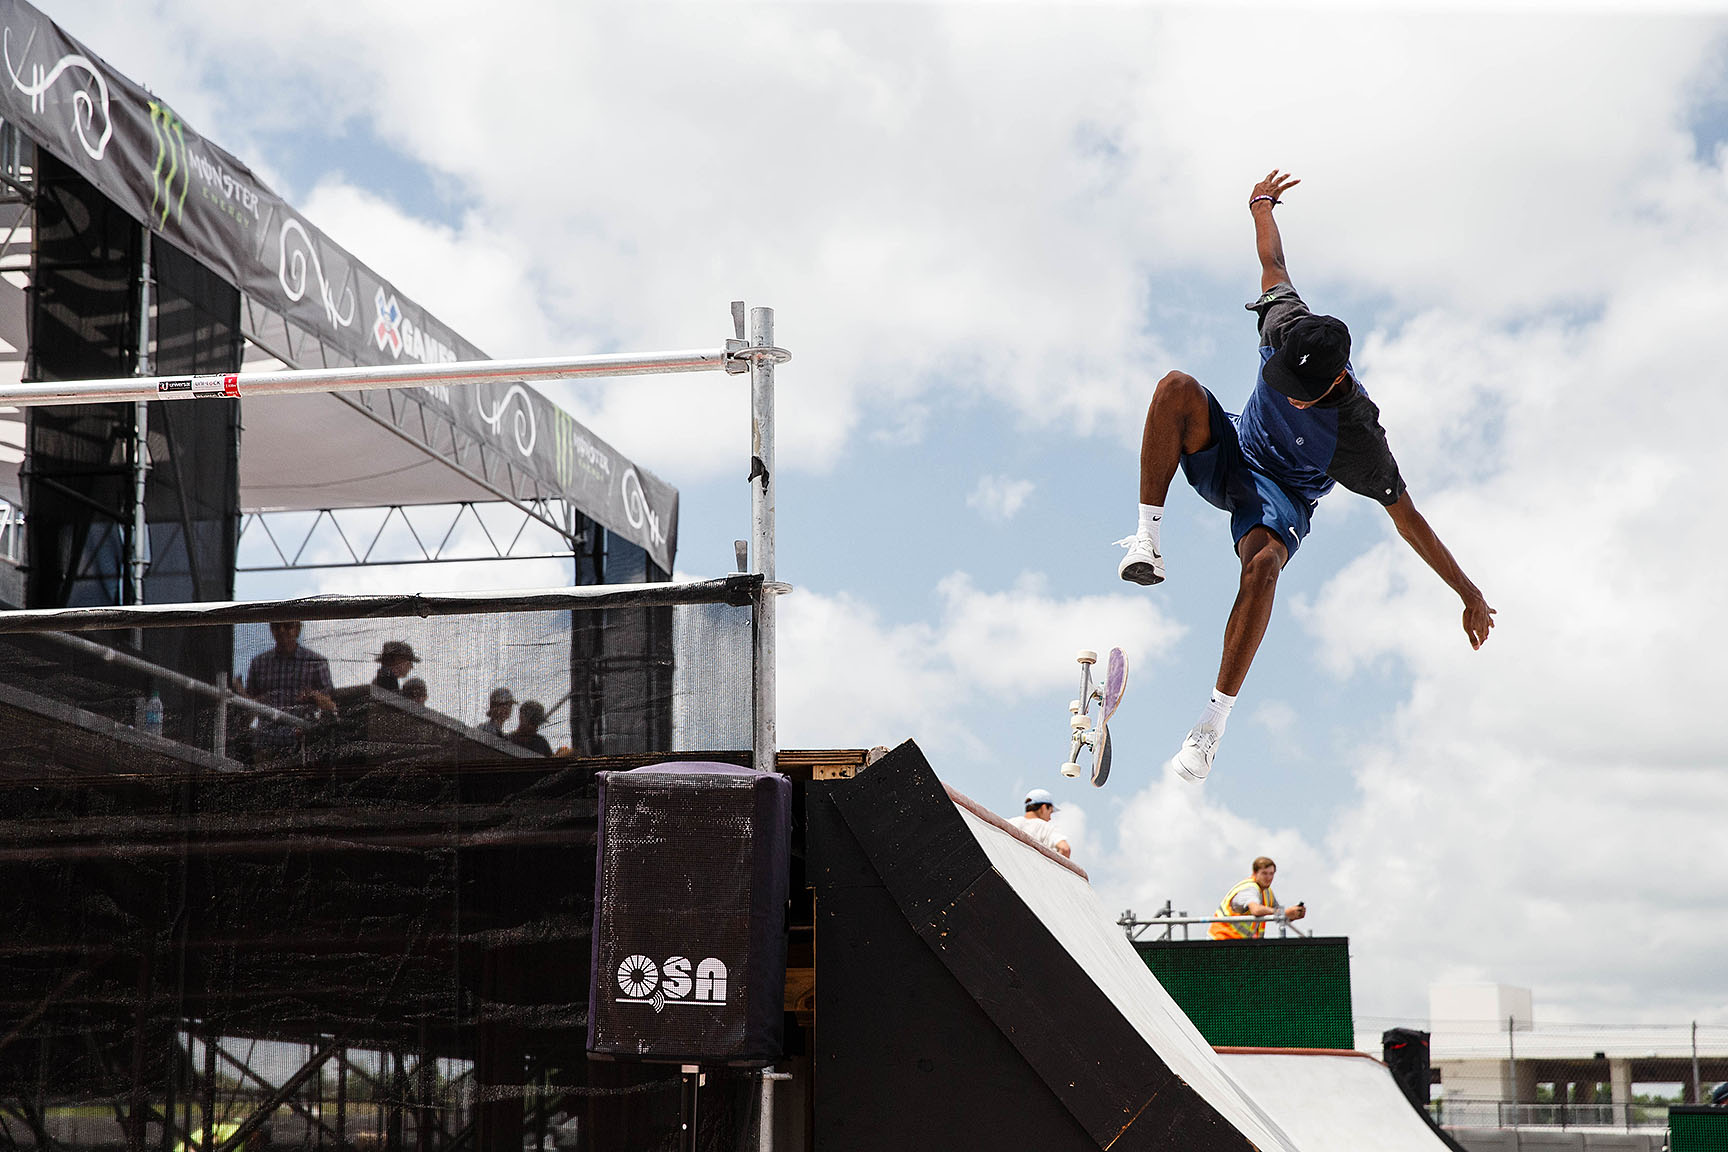 Brazil's Gabriel Fortunato works on his run. Skateboard Street Ams opens the day's competition on Friday, starting at 2:30 p.m. CT.